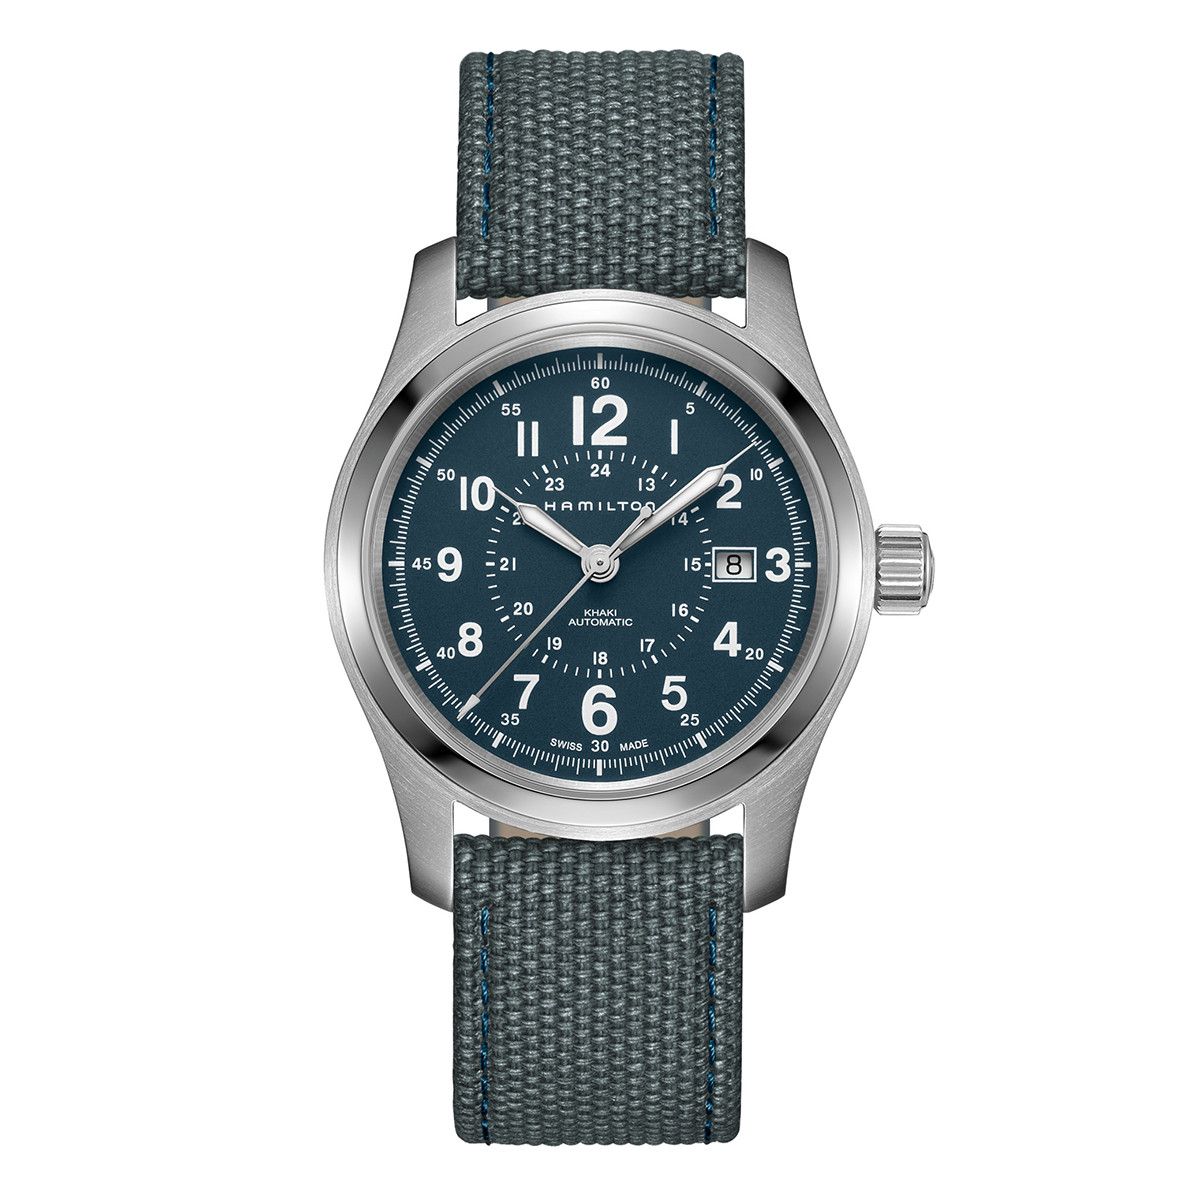 New Men's Hamilton Khaki Field